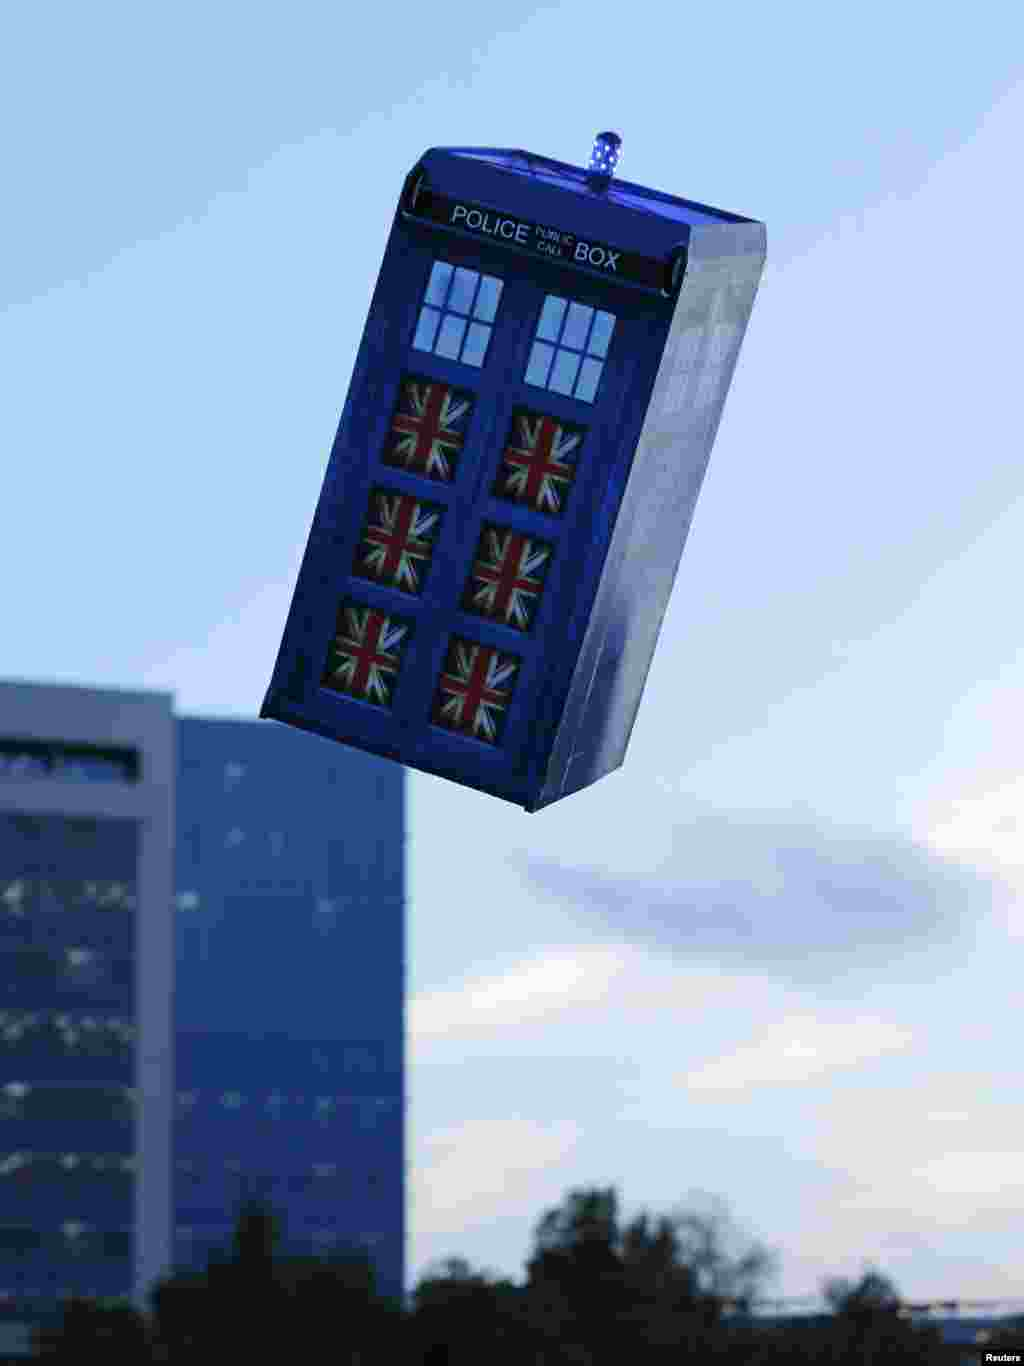 """A flying """"Tardis"""" remote control air craft is test-flown past a building in San Diego, California, Nov. 18, 2013. Inventor Otto Dieffenbach built the """"Tardis"""", an old-fashioned police call box used as a time machine in the British television series Dr. Who, to celebrate the show's 50th season this year."""